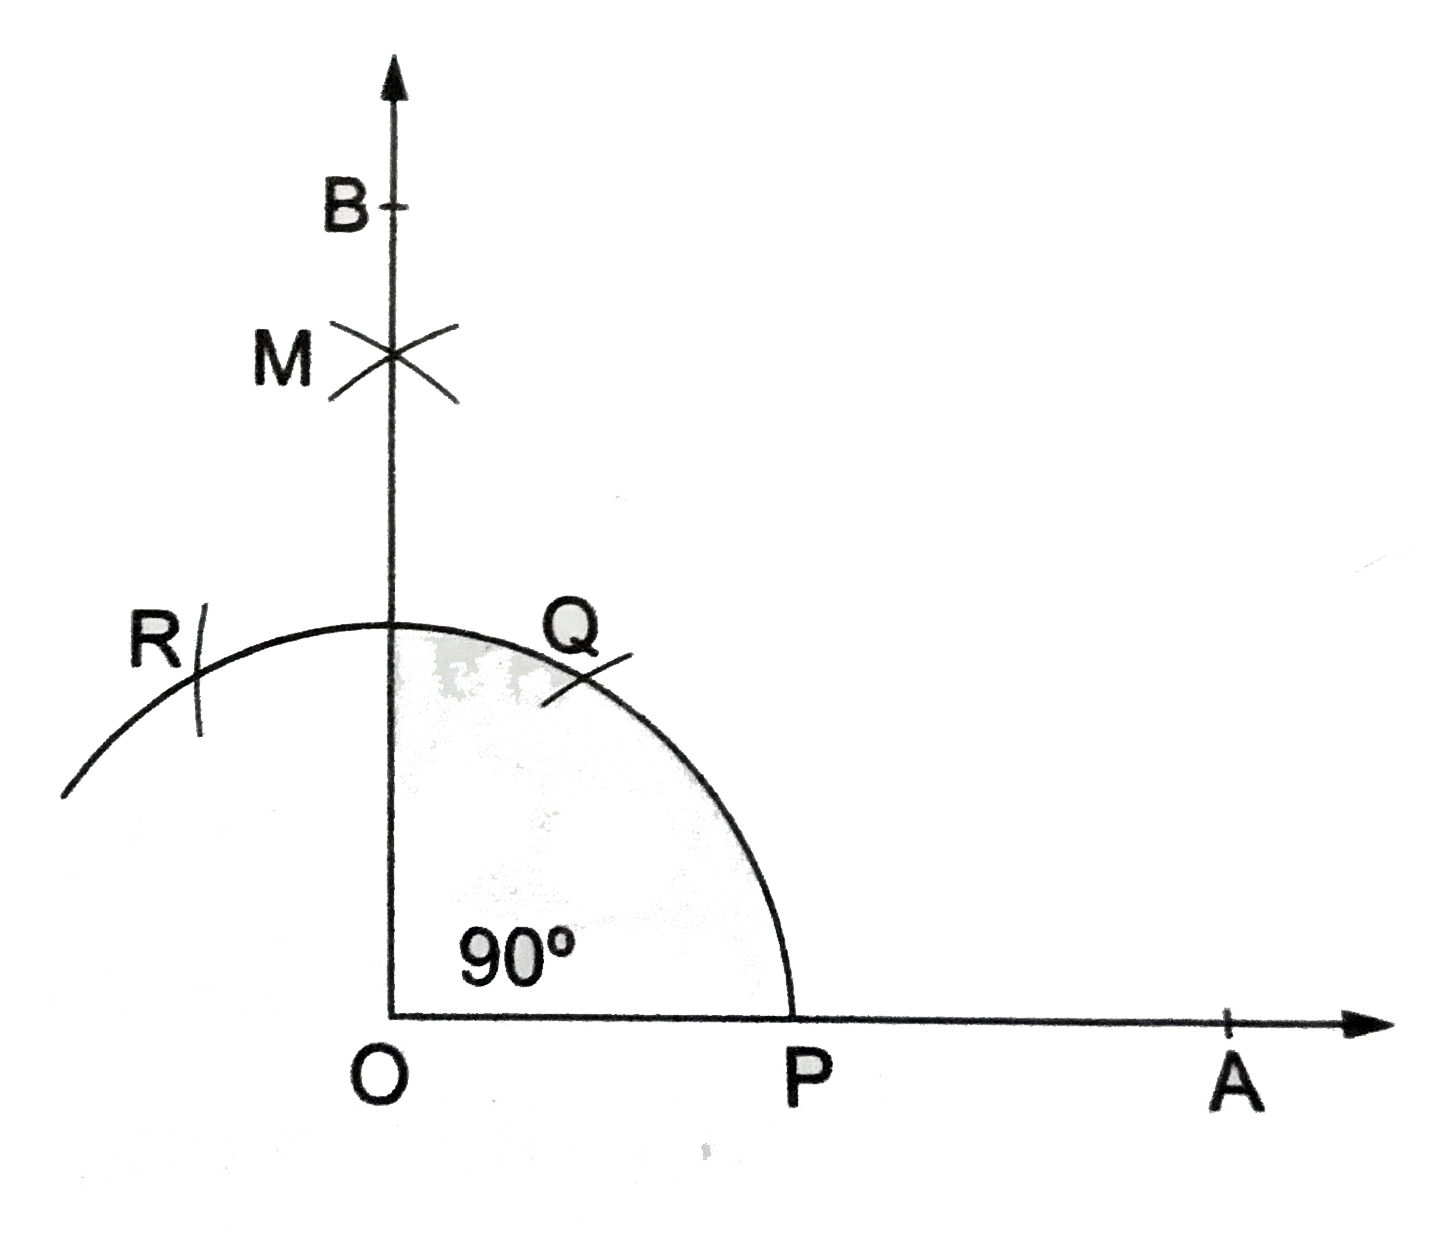 construct an angle of 90 using